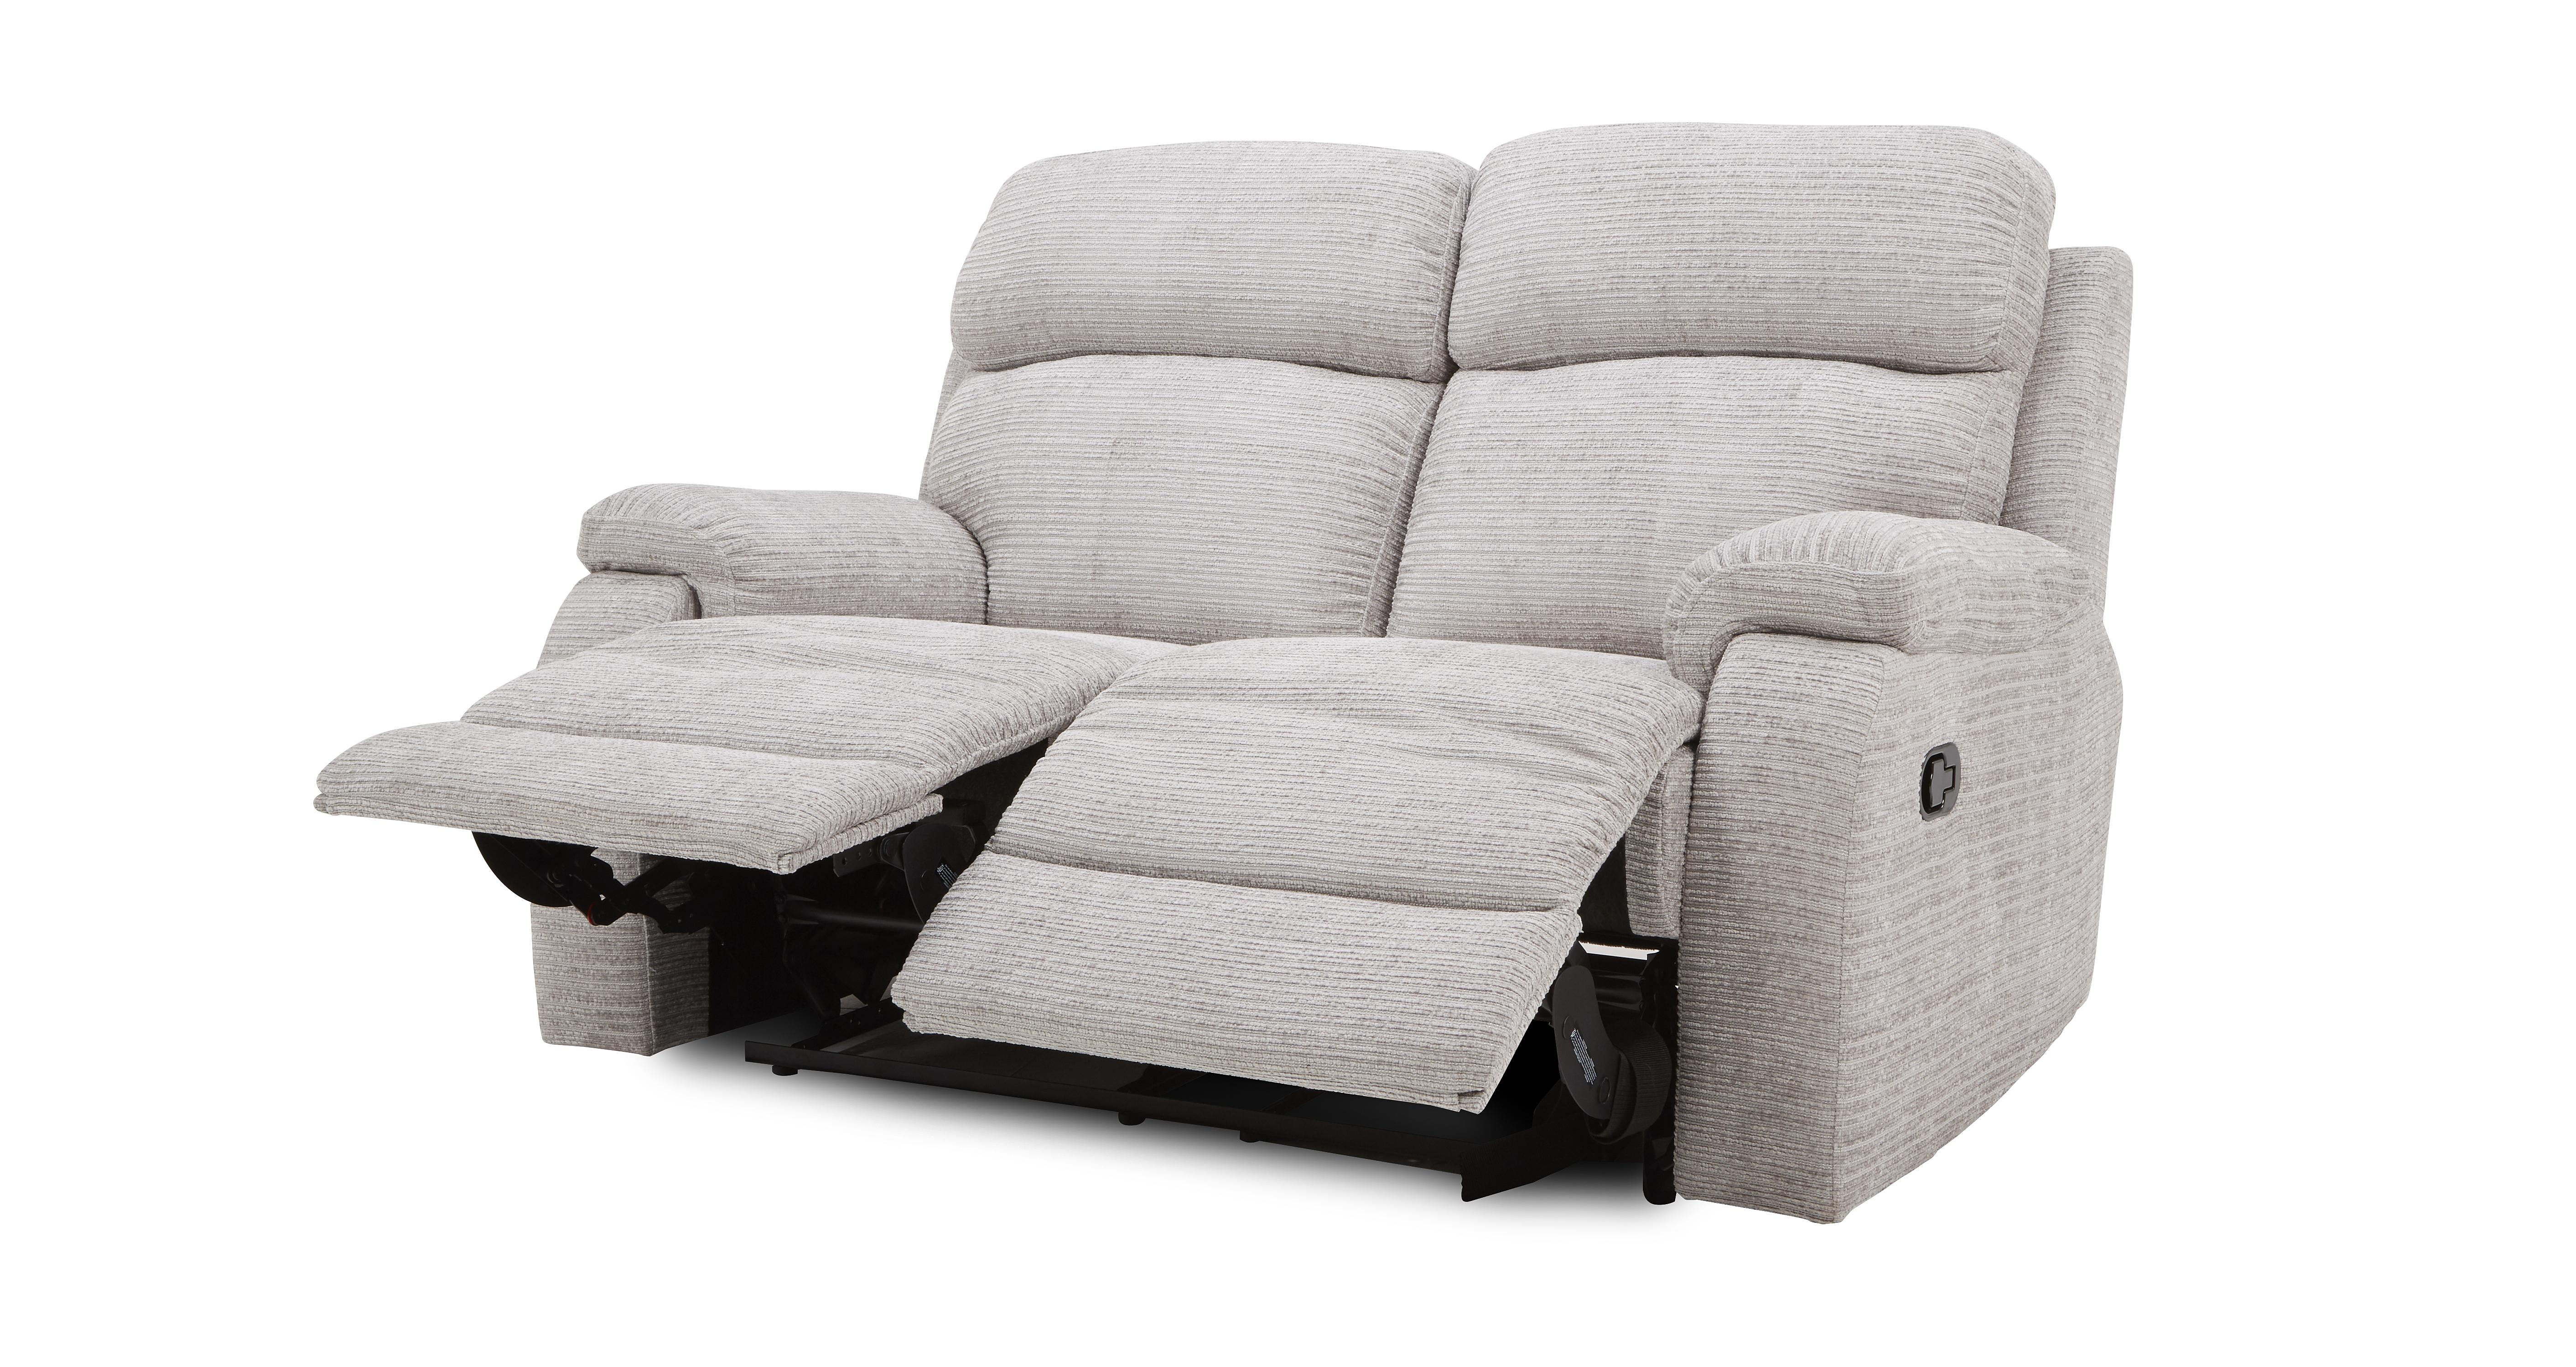 Newbury: 2 Seater Manual Recliner